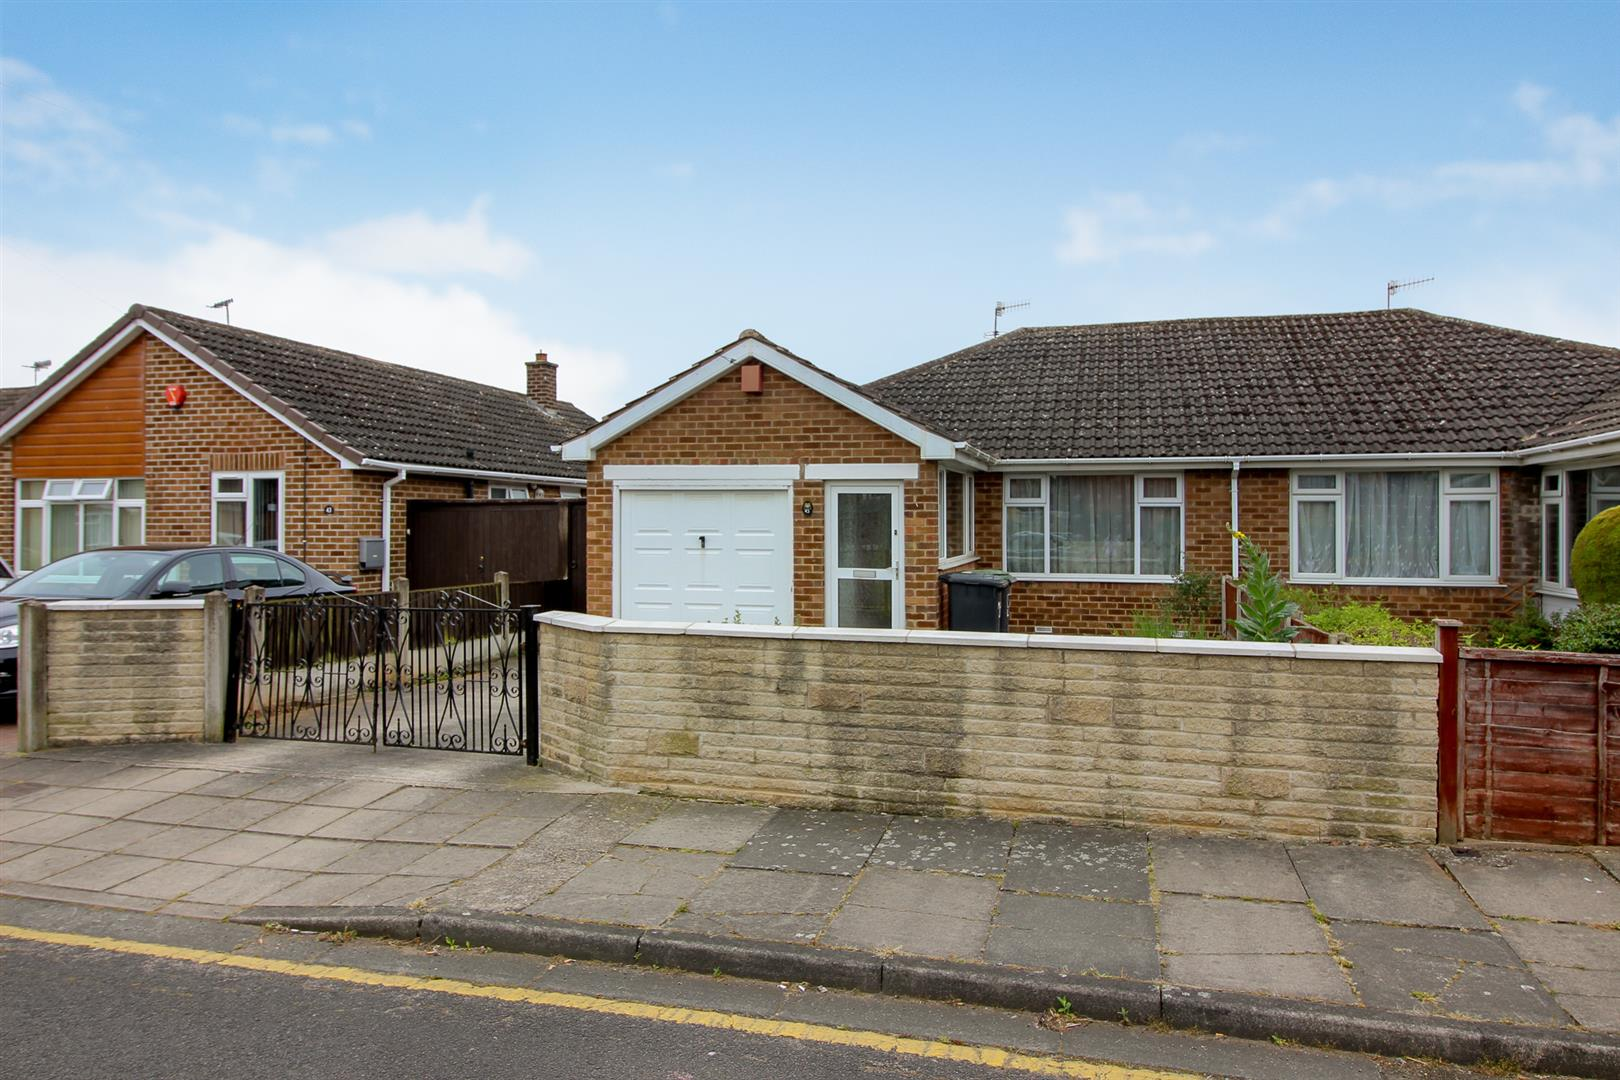 2 Bedrooms Bungalow for sale in Wellington Street, Stapleford